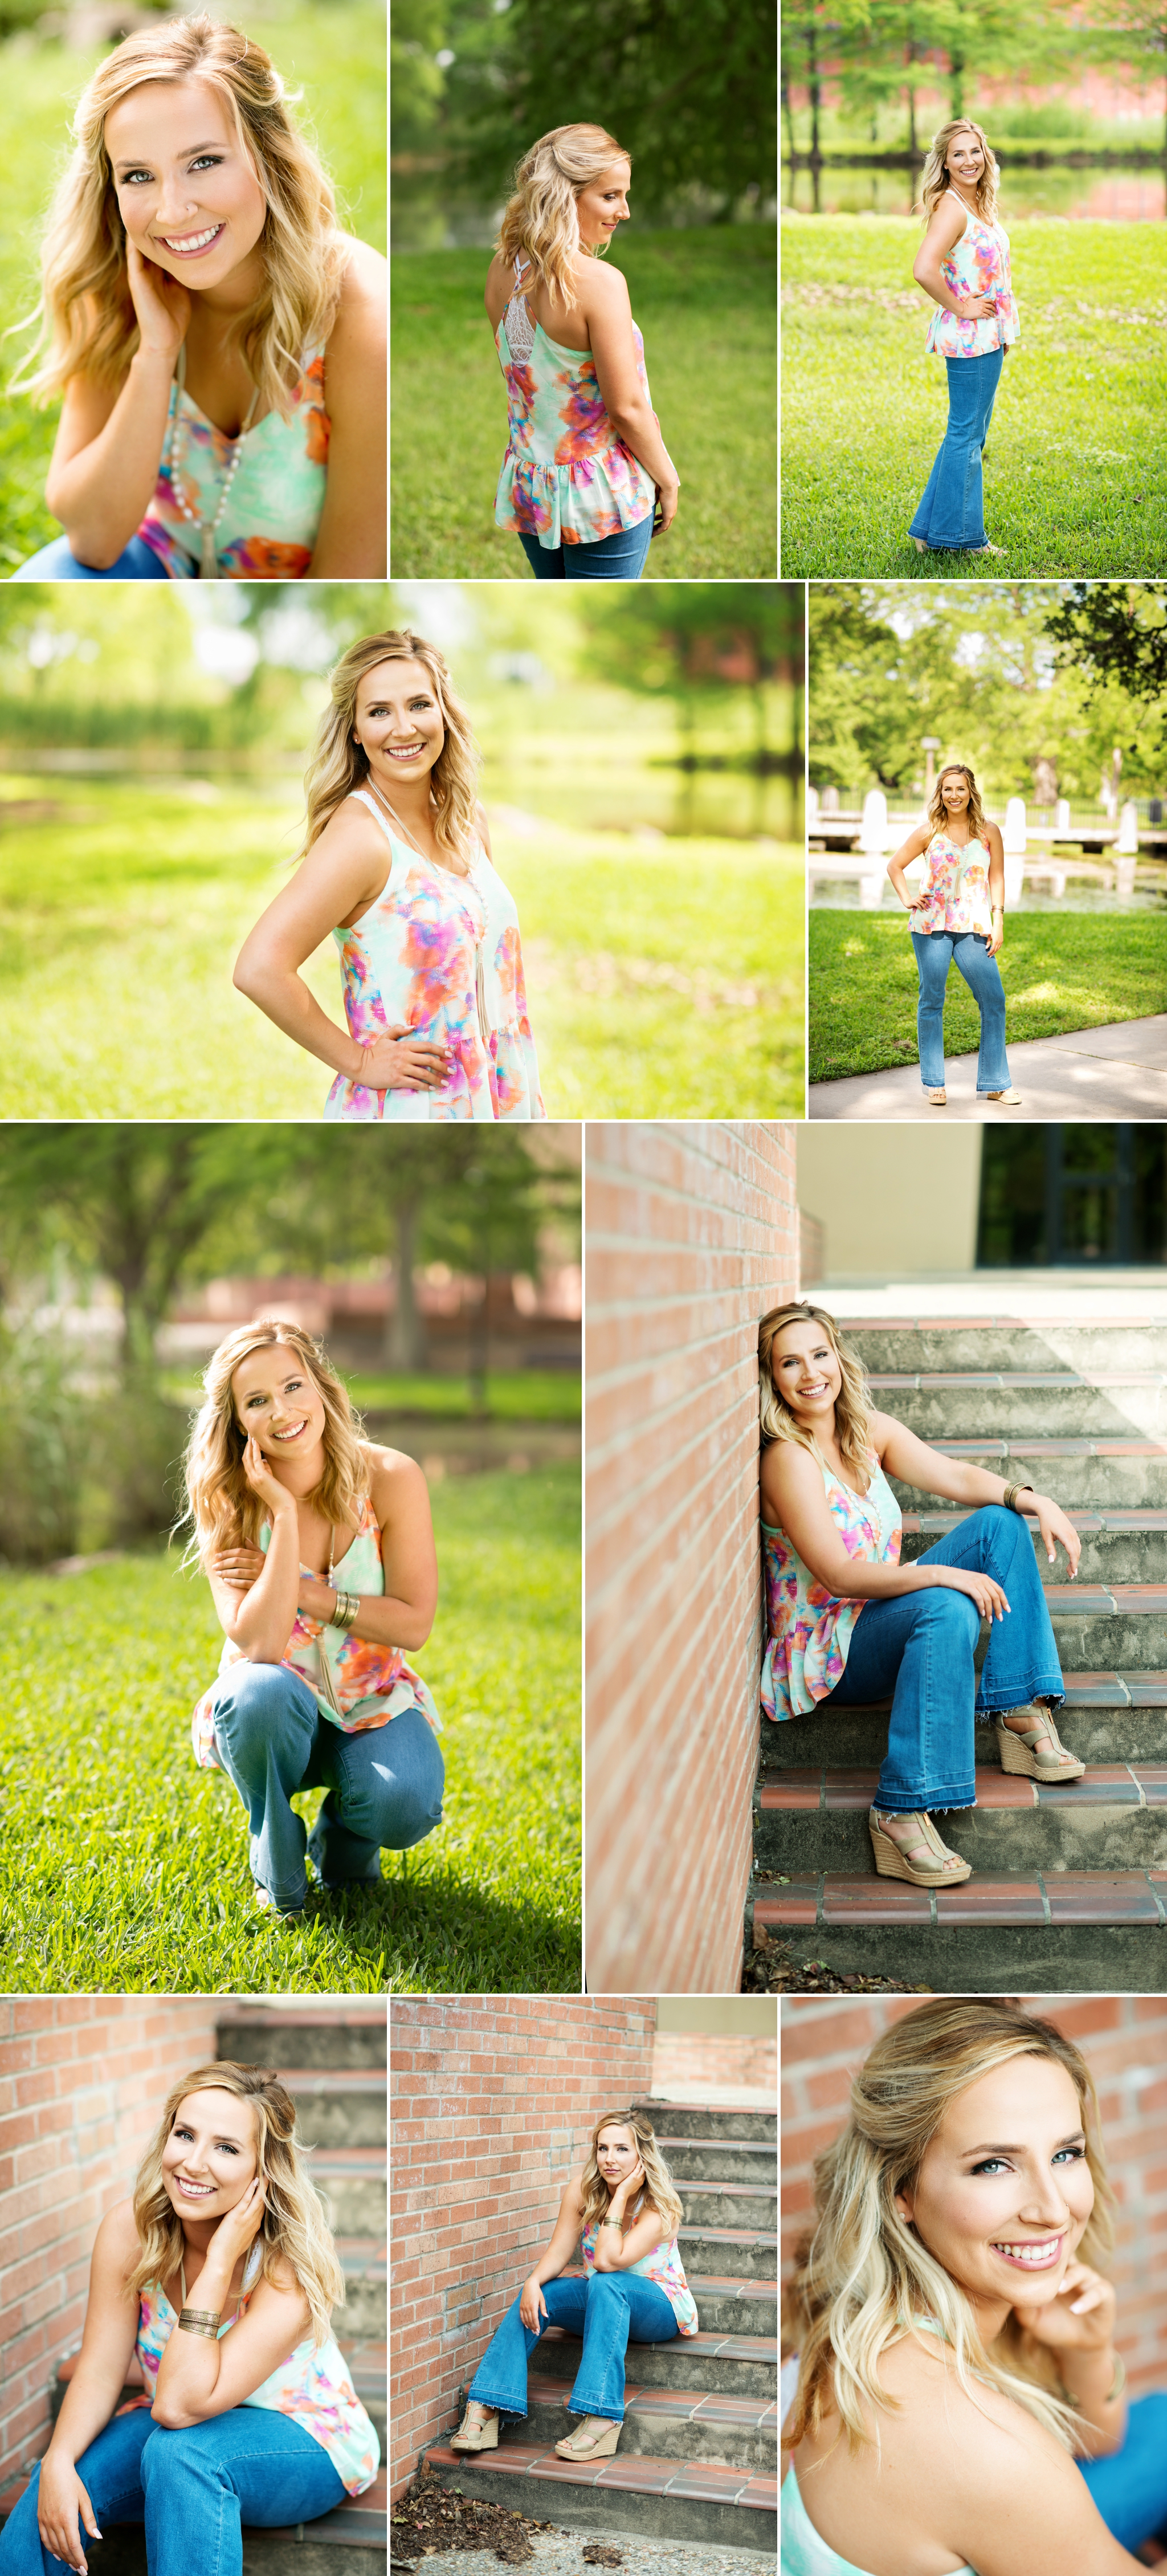 Austin's College Senior Portrait Photography